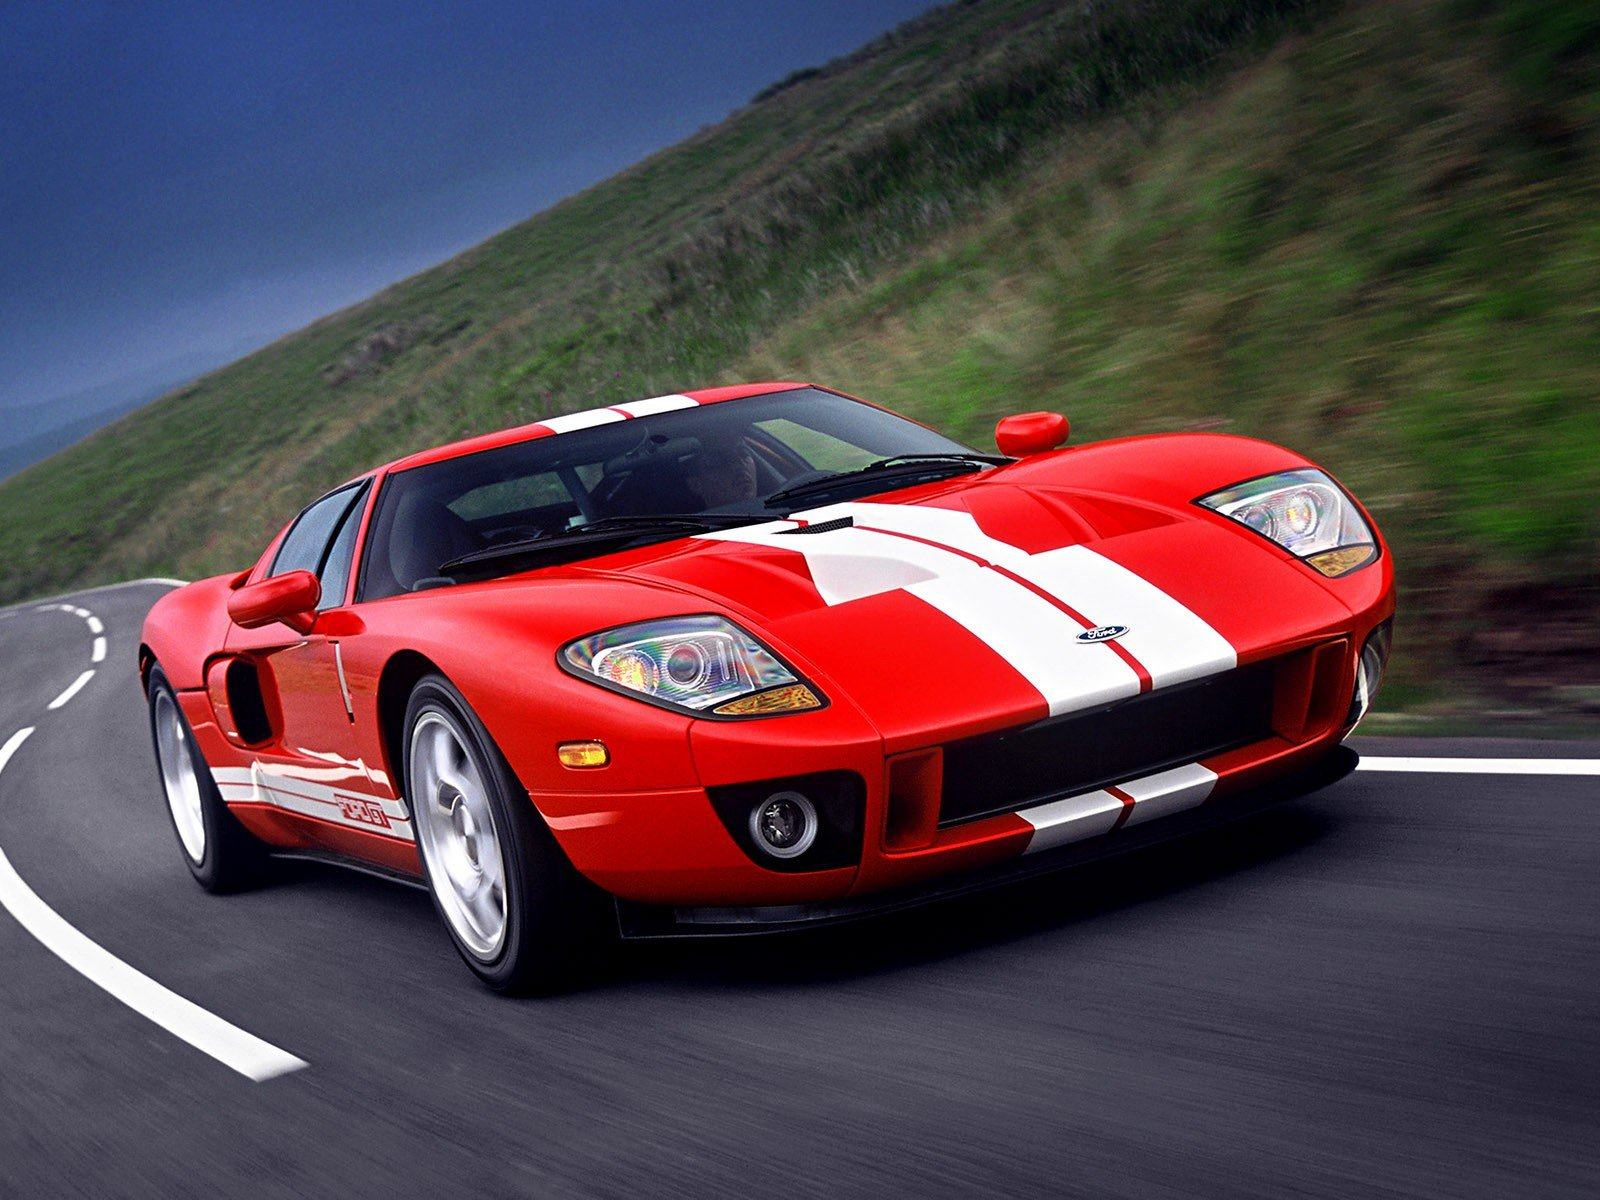 cars wallpapers ford gt wallpaper wallpaper 36665jpg 1600x1200